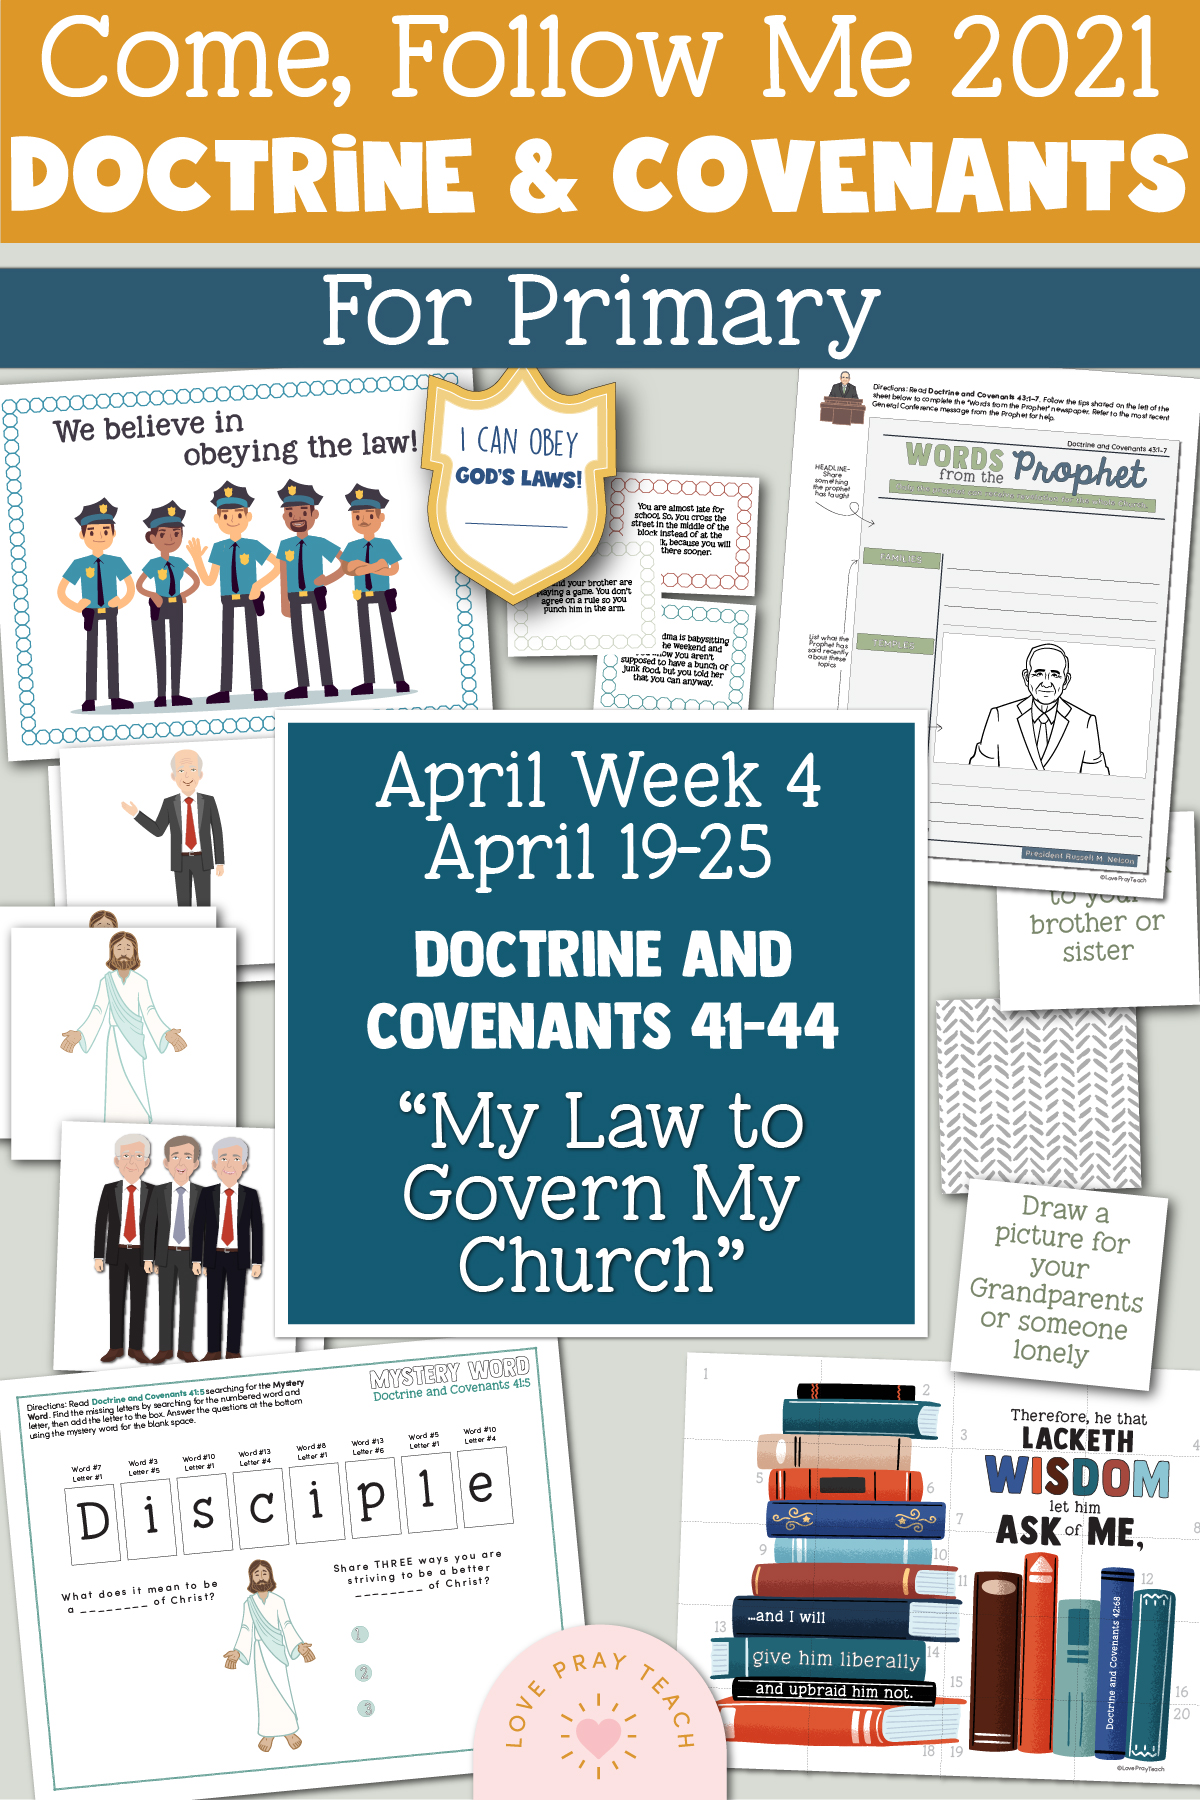 Come, Follow Me for Primary 2021 April Week 3 Doctrine and Covenants 37-40